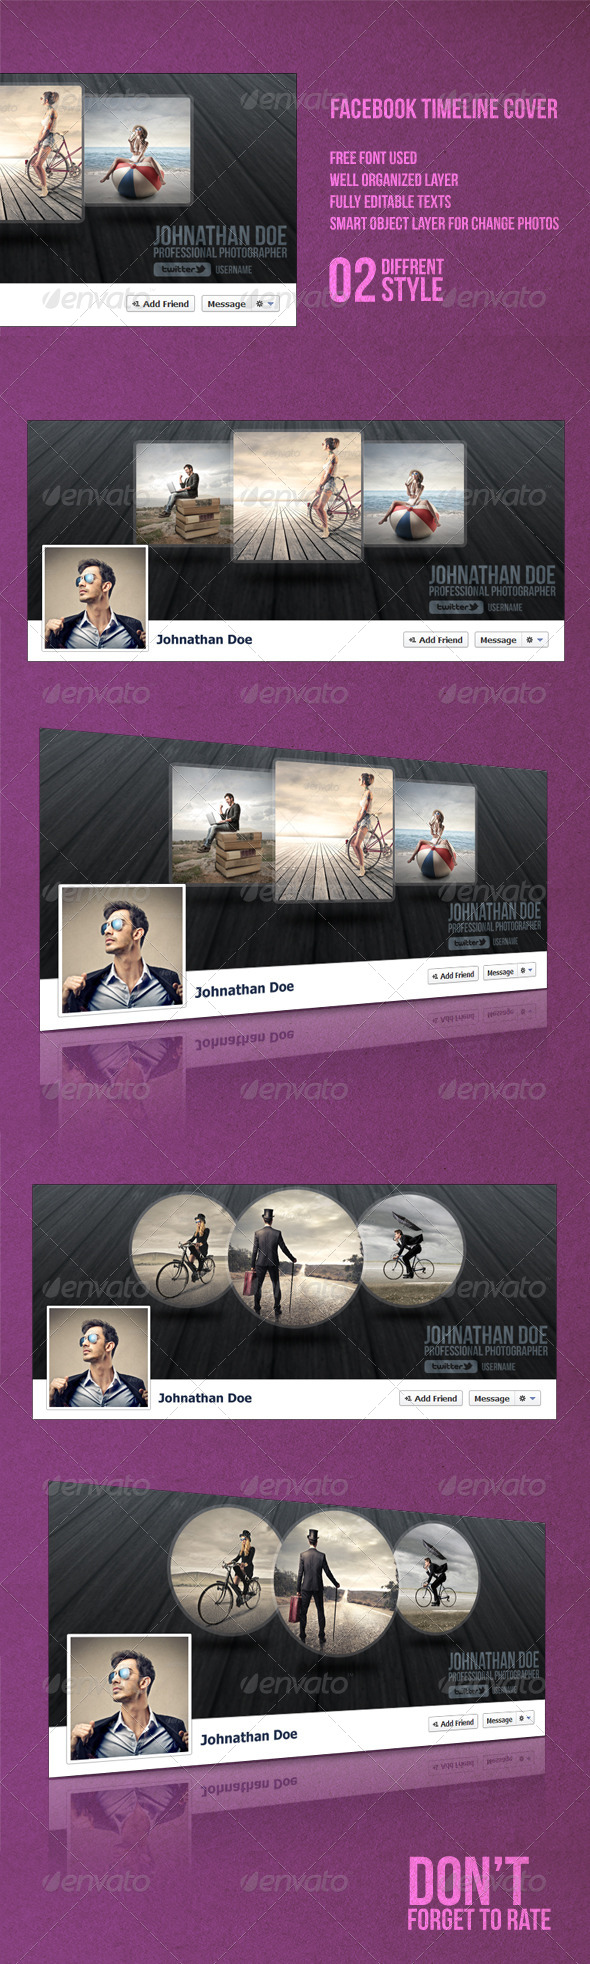 GraphicRiver Facebook Timeline Cover 8036618